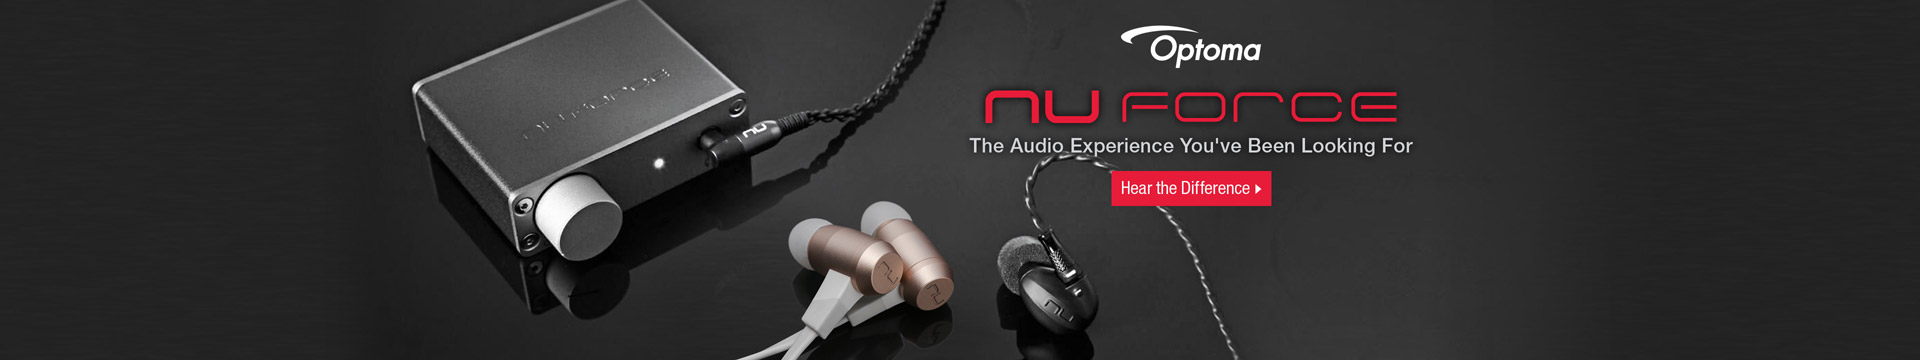 The audio experience you've been looking for